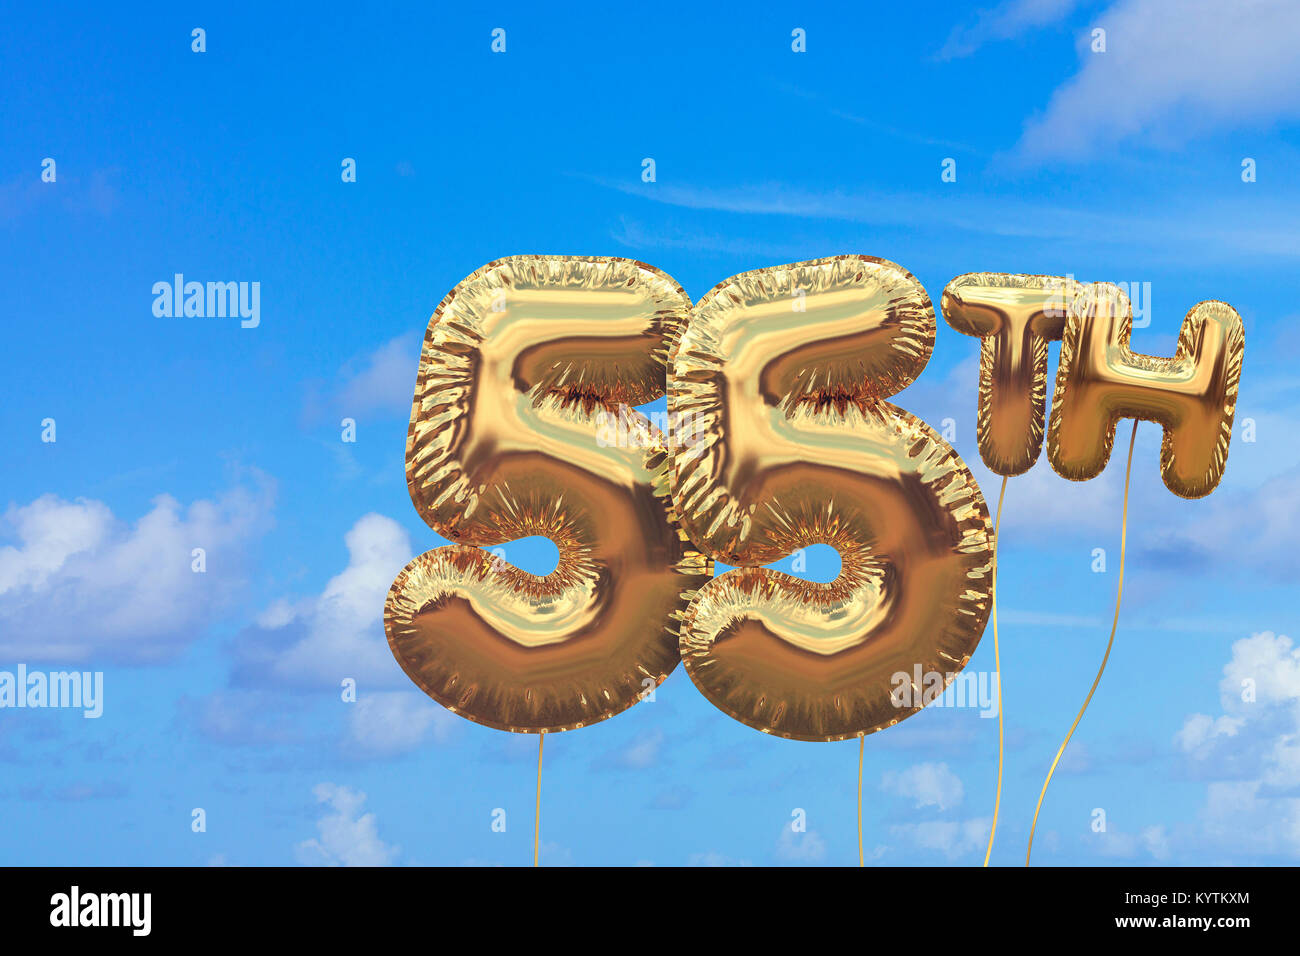 Gold Number 55 Foil Birthday Balloon Against A Bright Blue Summer Sky Golden Party Celebration 3D Rendering